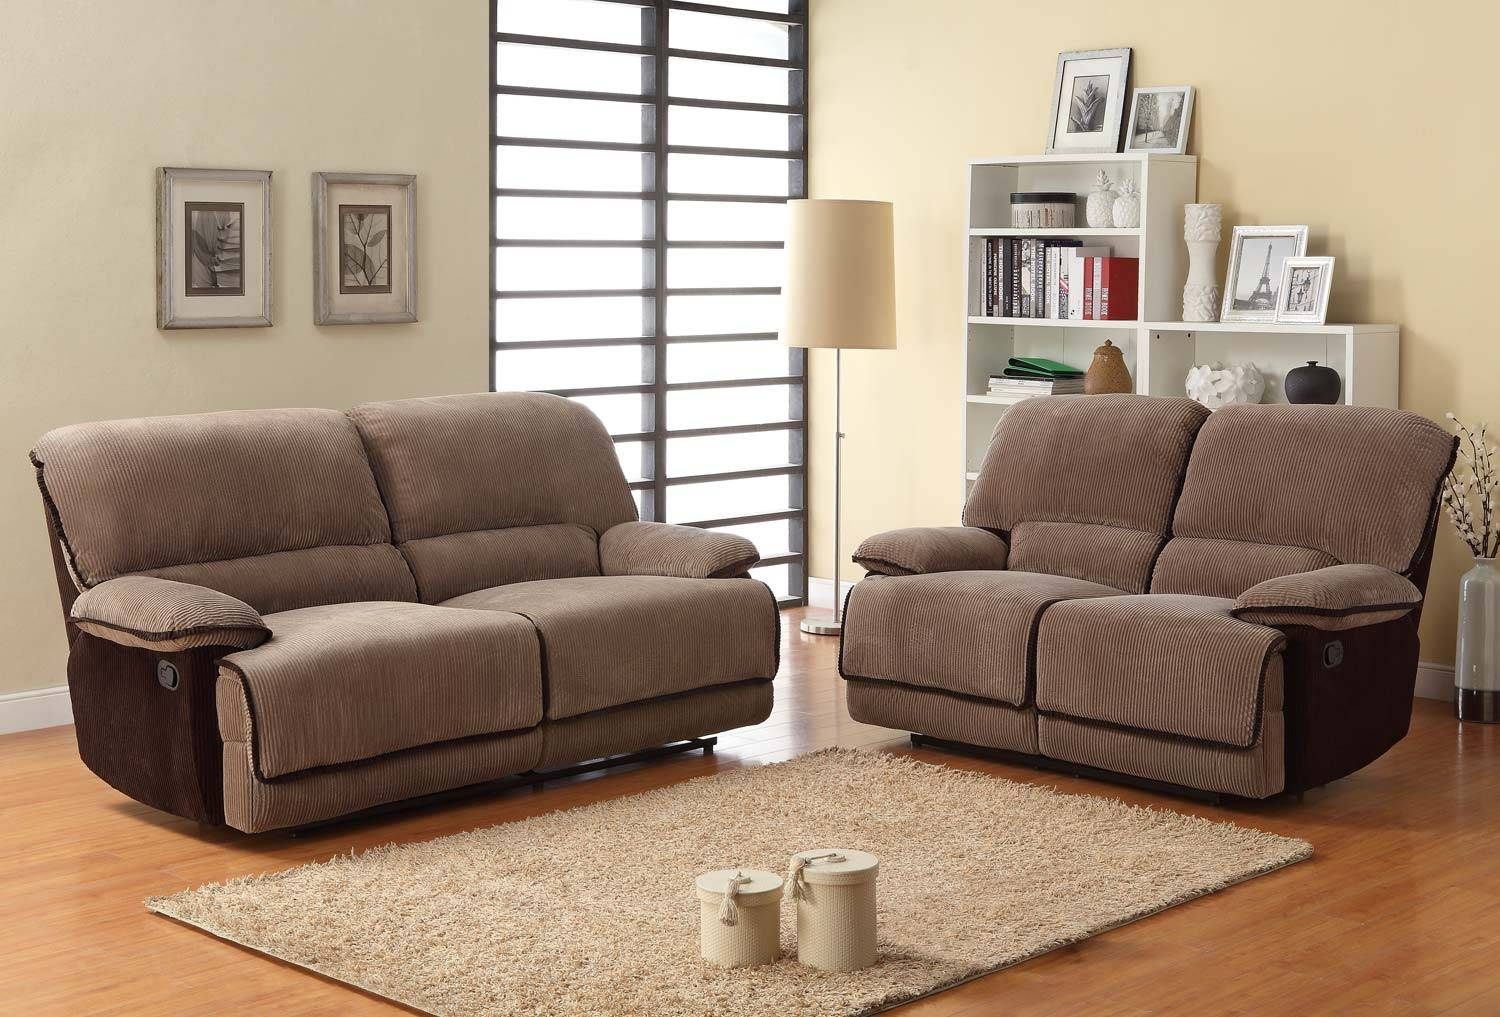 Homelegance Grantham Reclining Sofa Set - Brown - Corduroy U9717-3 intended for Brown Corduroy Sofas (Image 6 of 15)